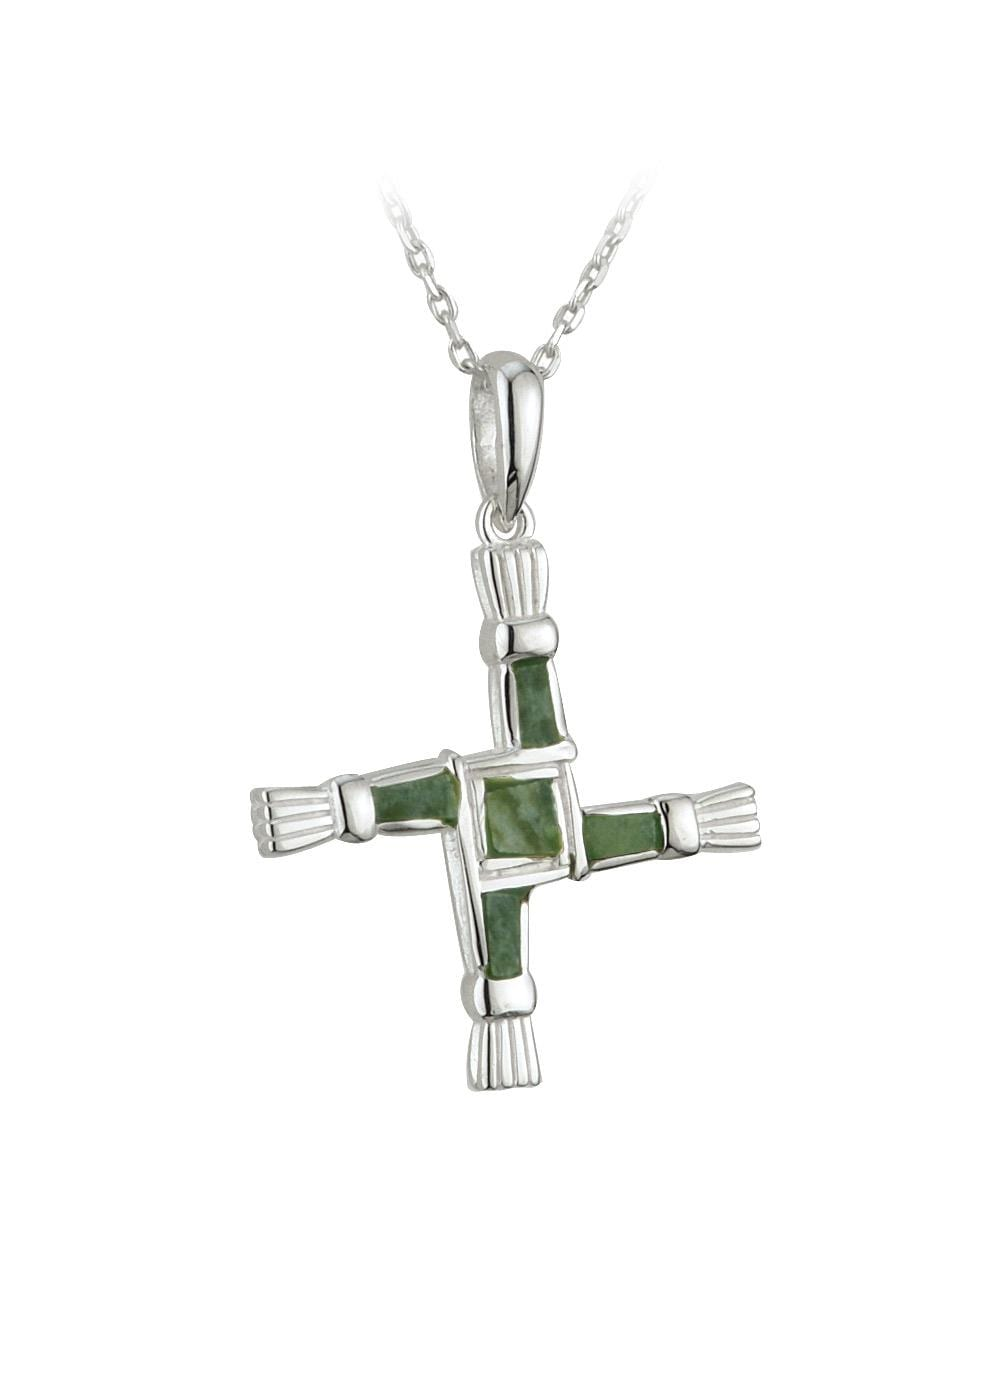 The Cross of St. Brigid is said to protect the heart & home of those who wear it